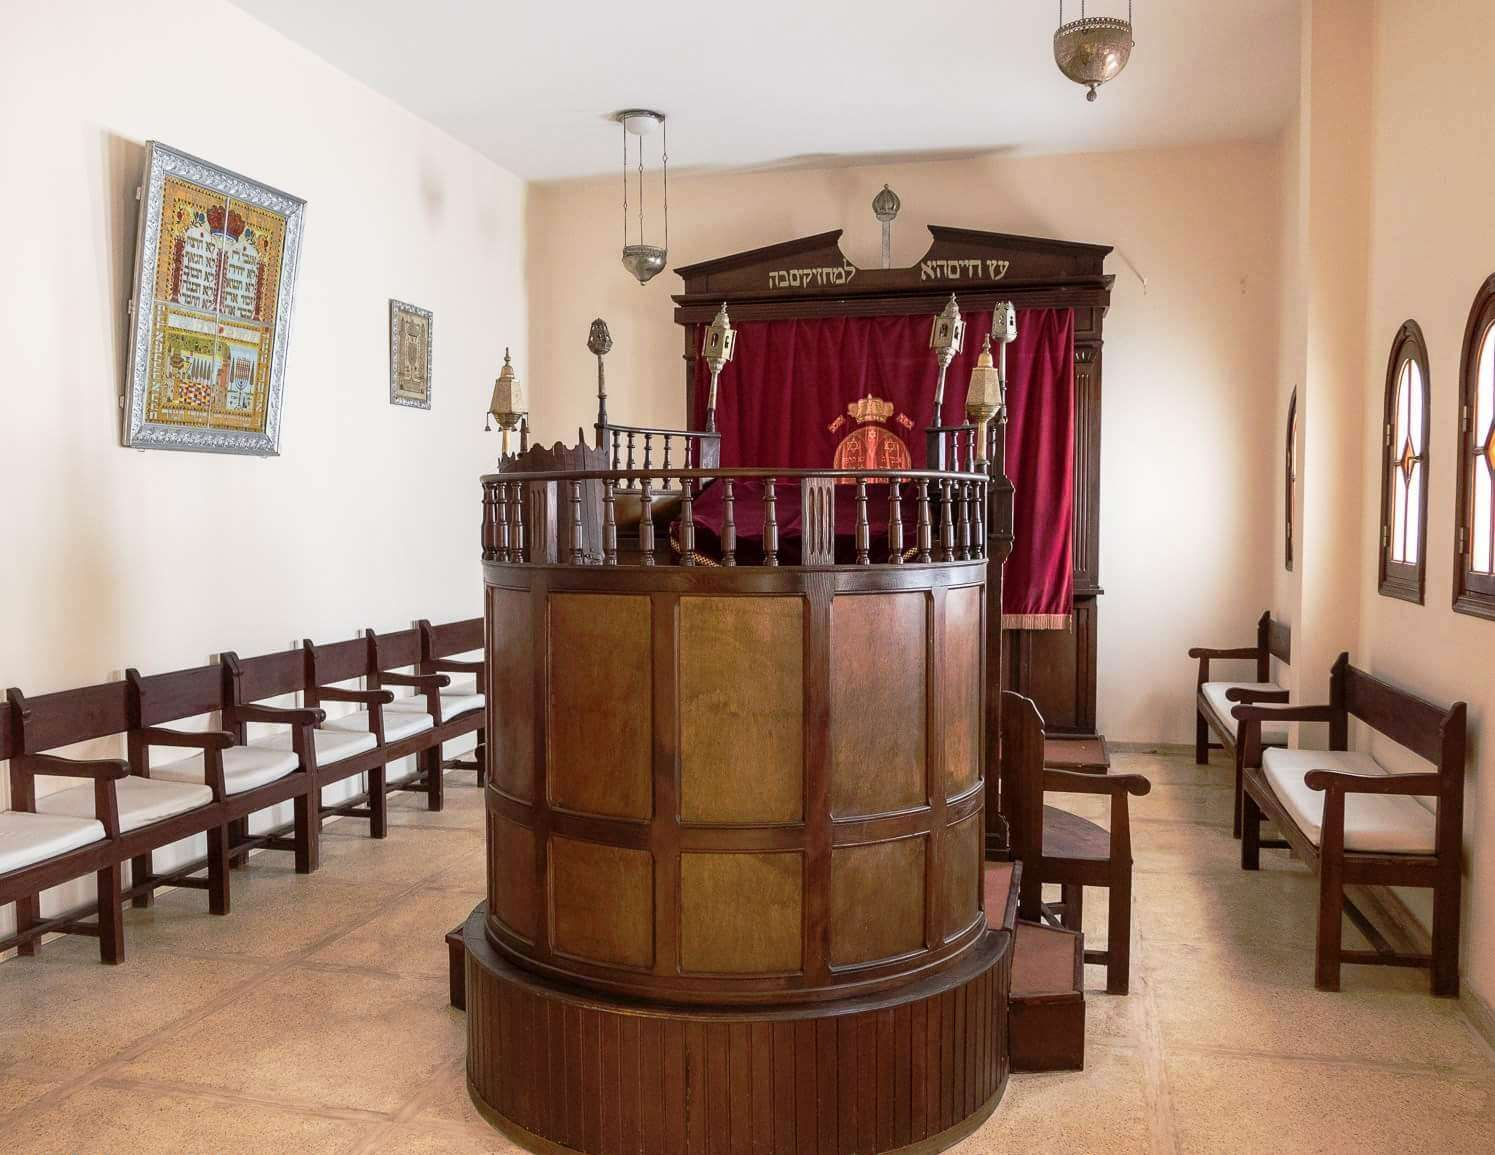 12 days Morocco Jewish heritage tour from Tangier to discover the Jewish culture in Morocco